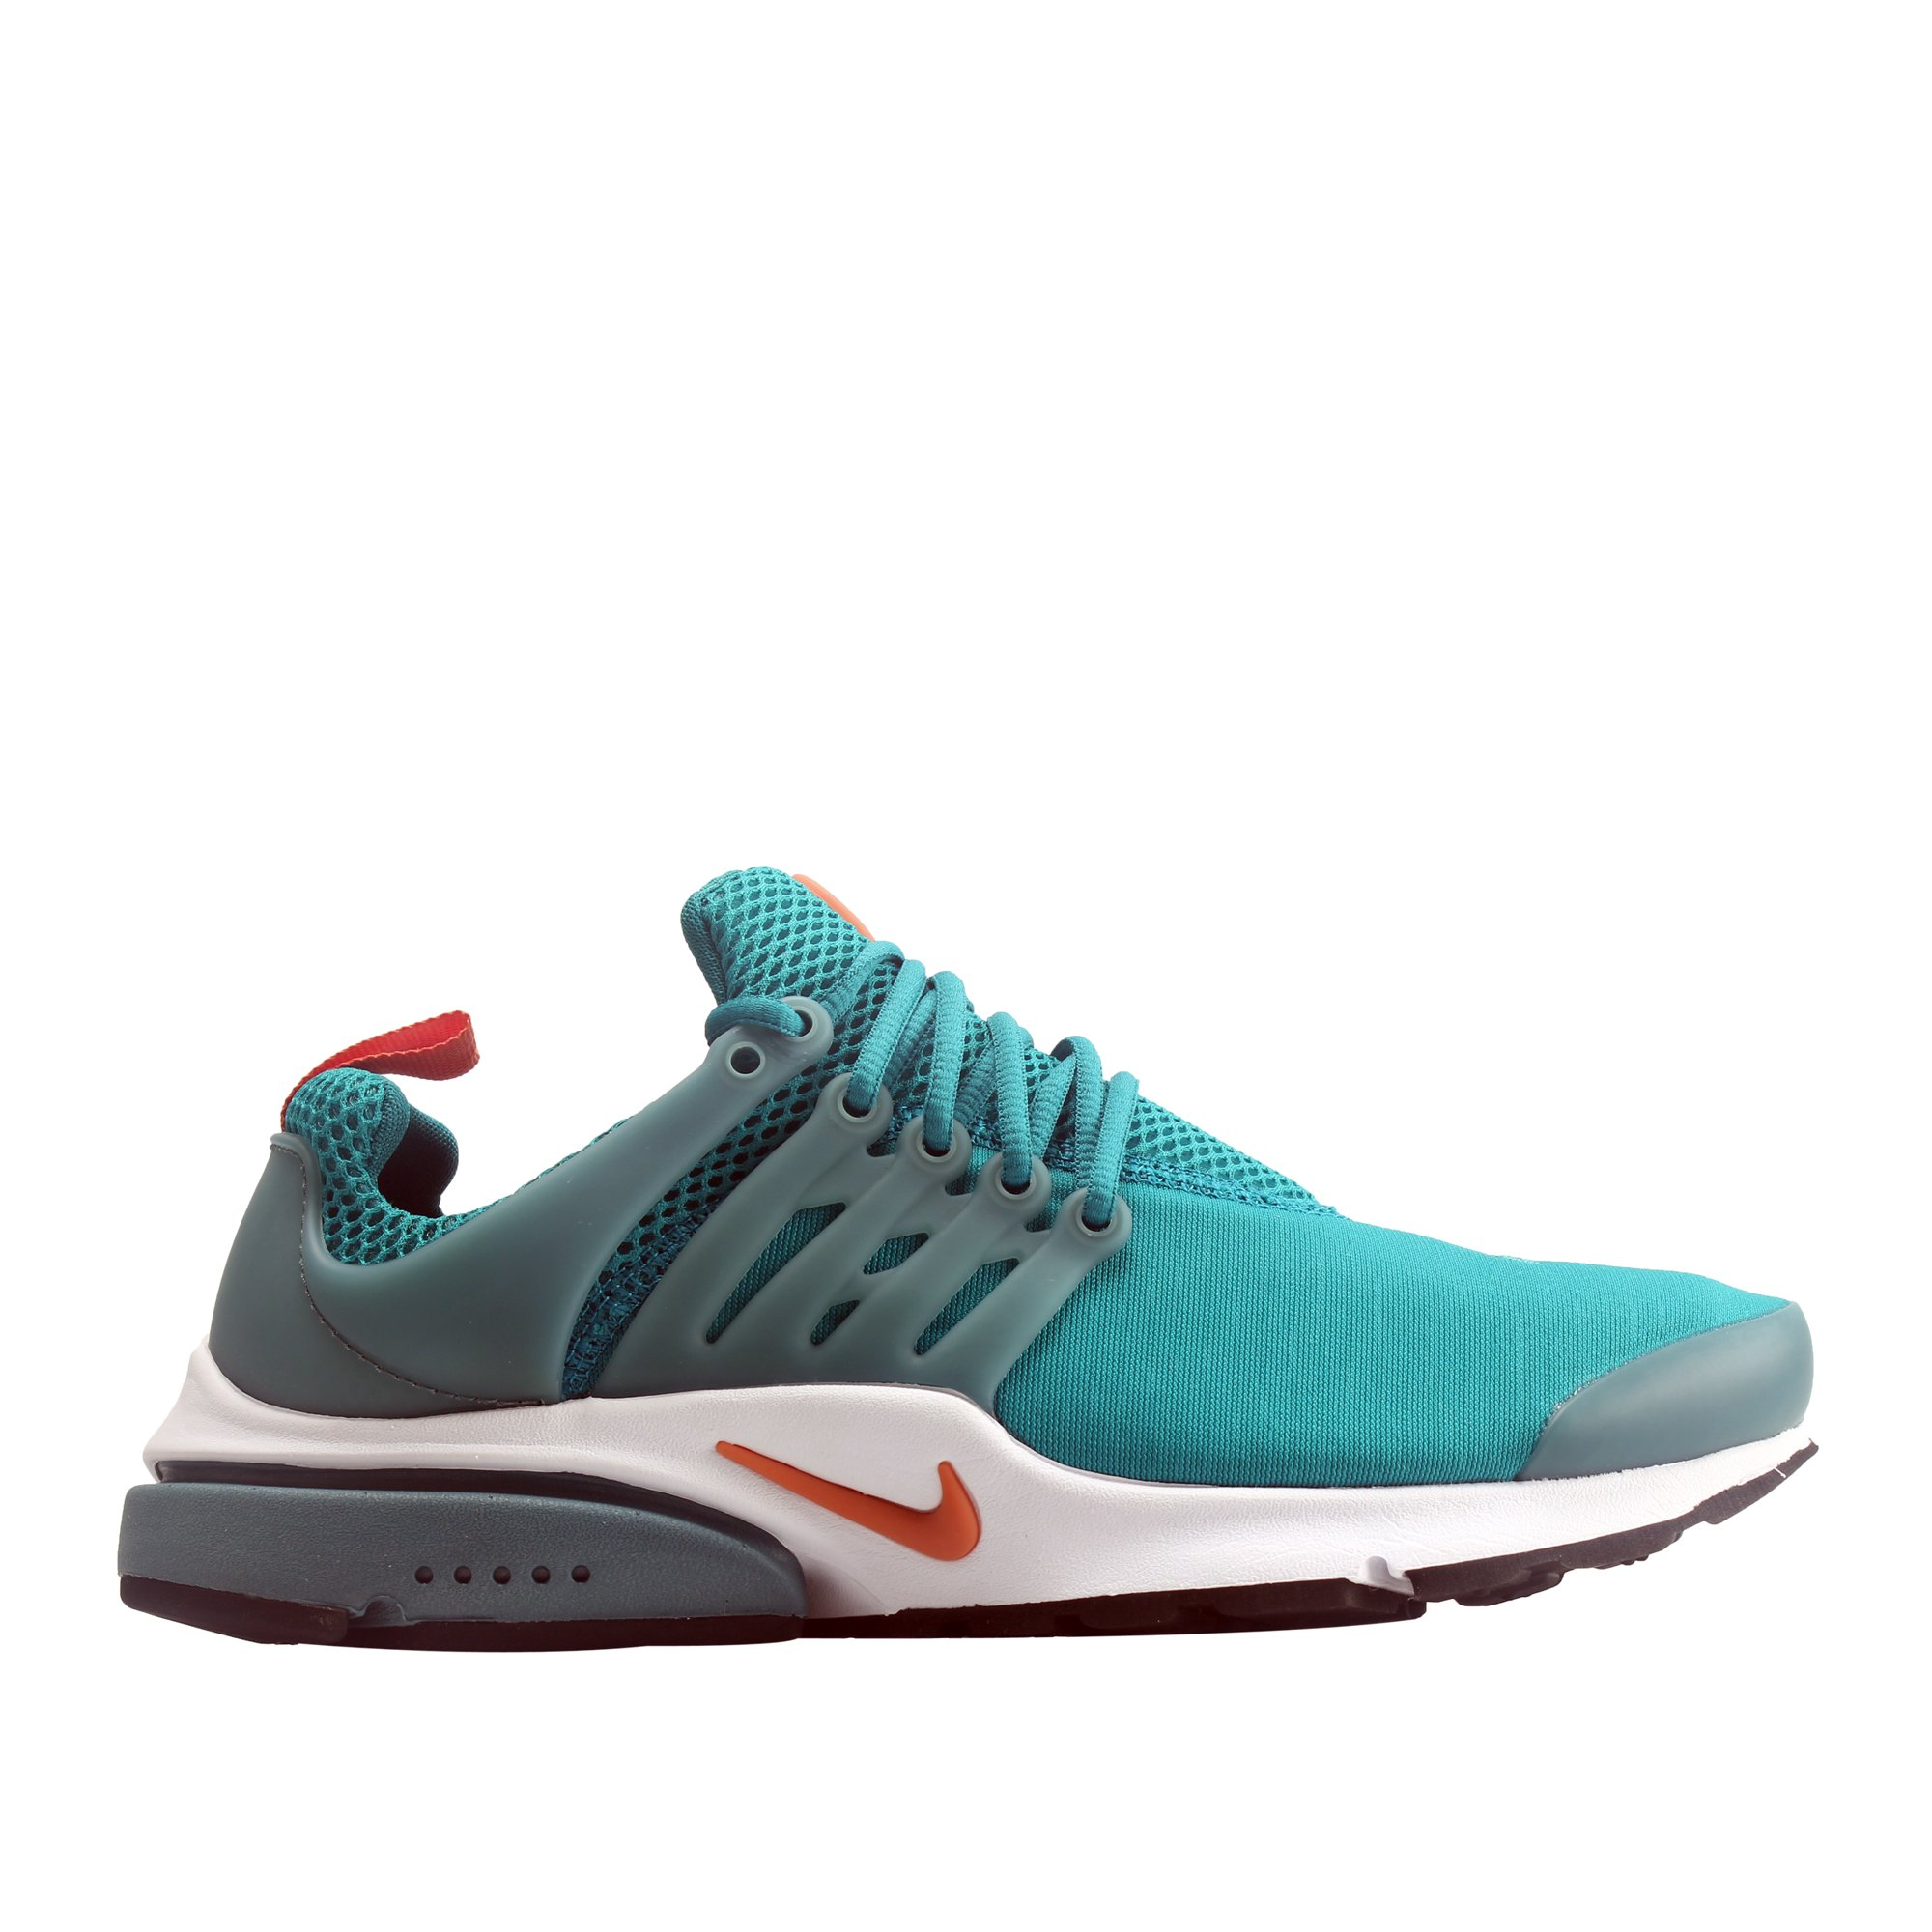 the latest 5aade adf6d Nike Air Presto Essential Dolphins Teal Orange Men s Running Shoes  848187-404